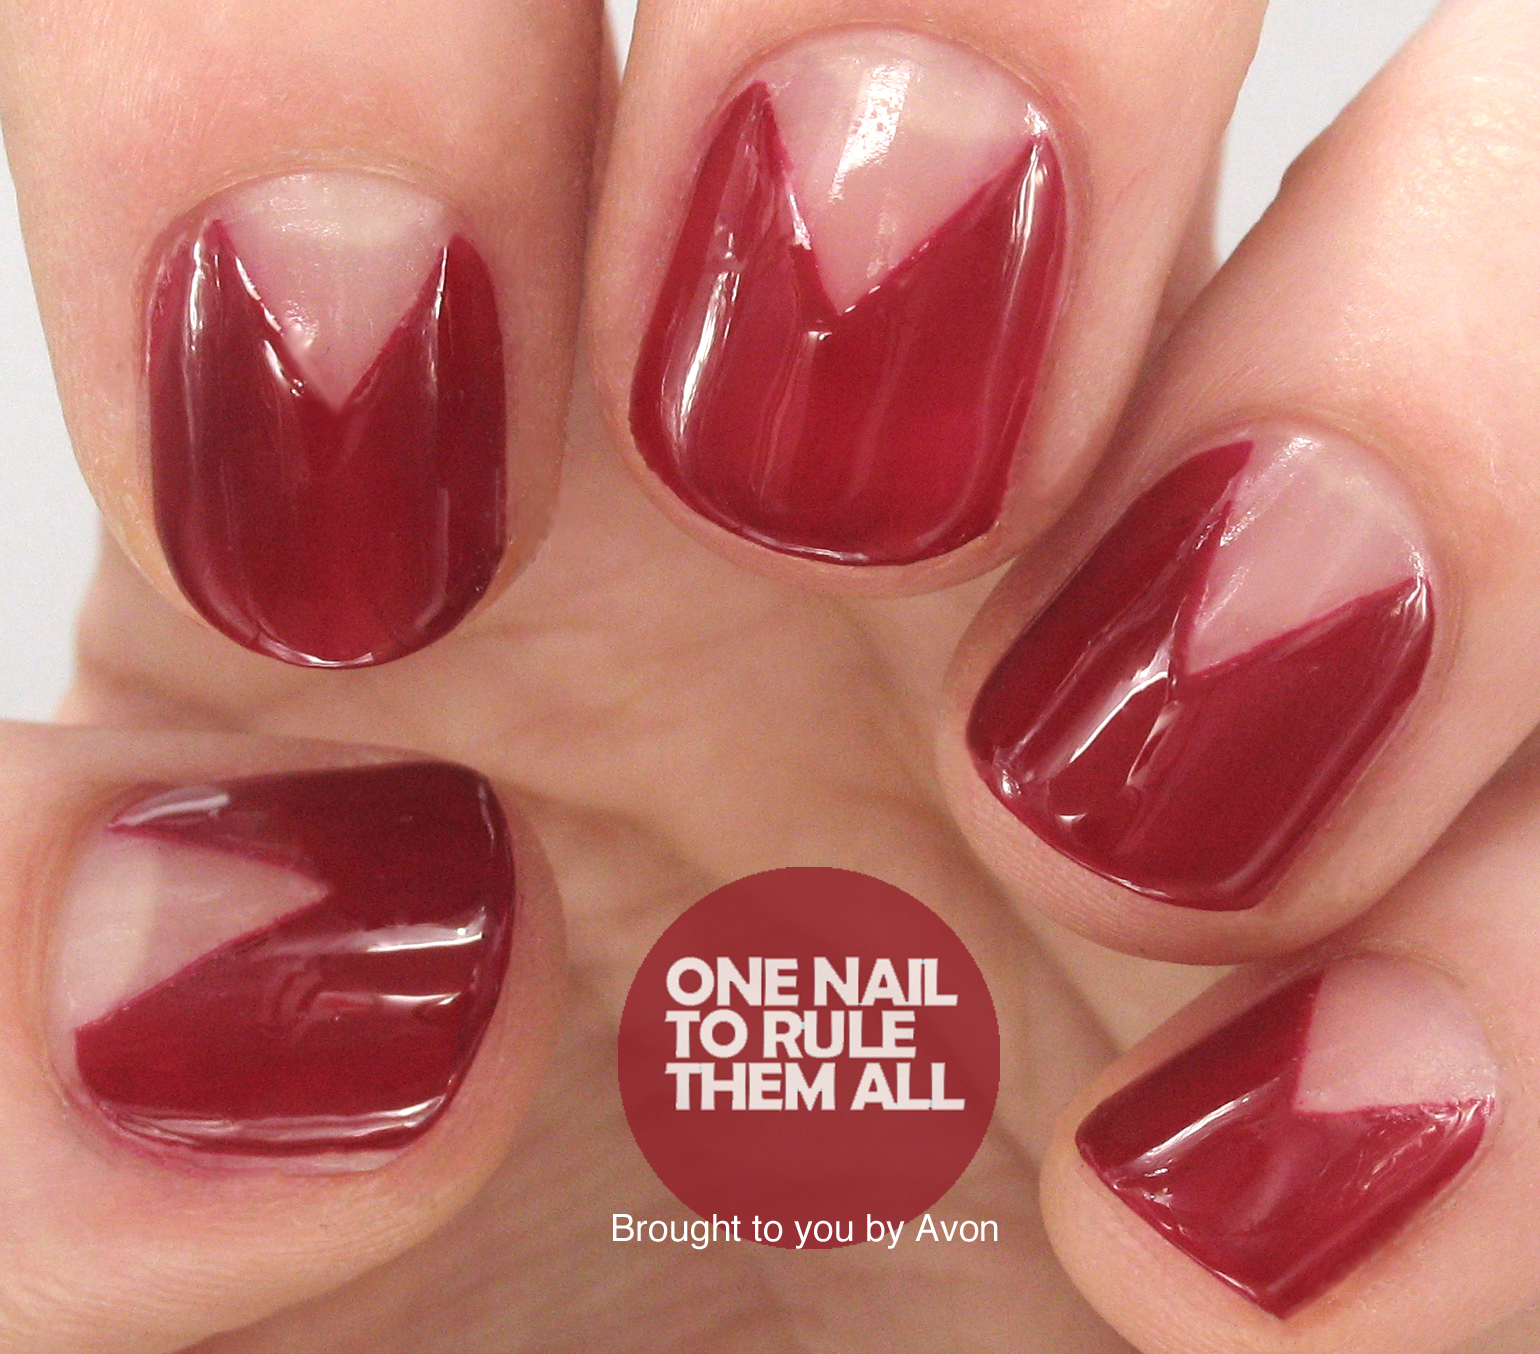 One Nail To Rule Them All Barry M Nail Art Pens Review: Moved Permanently